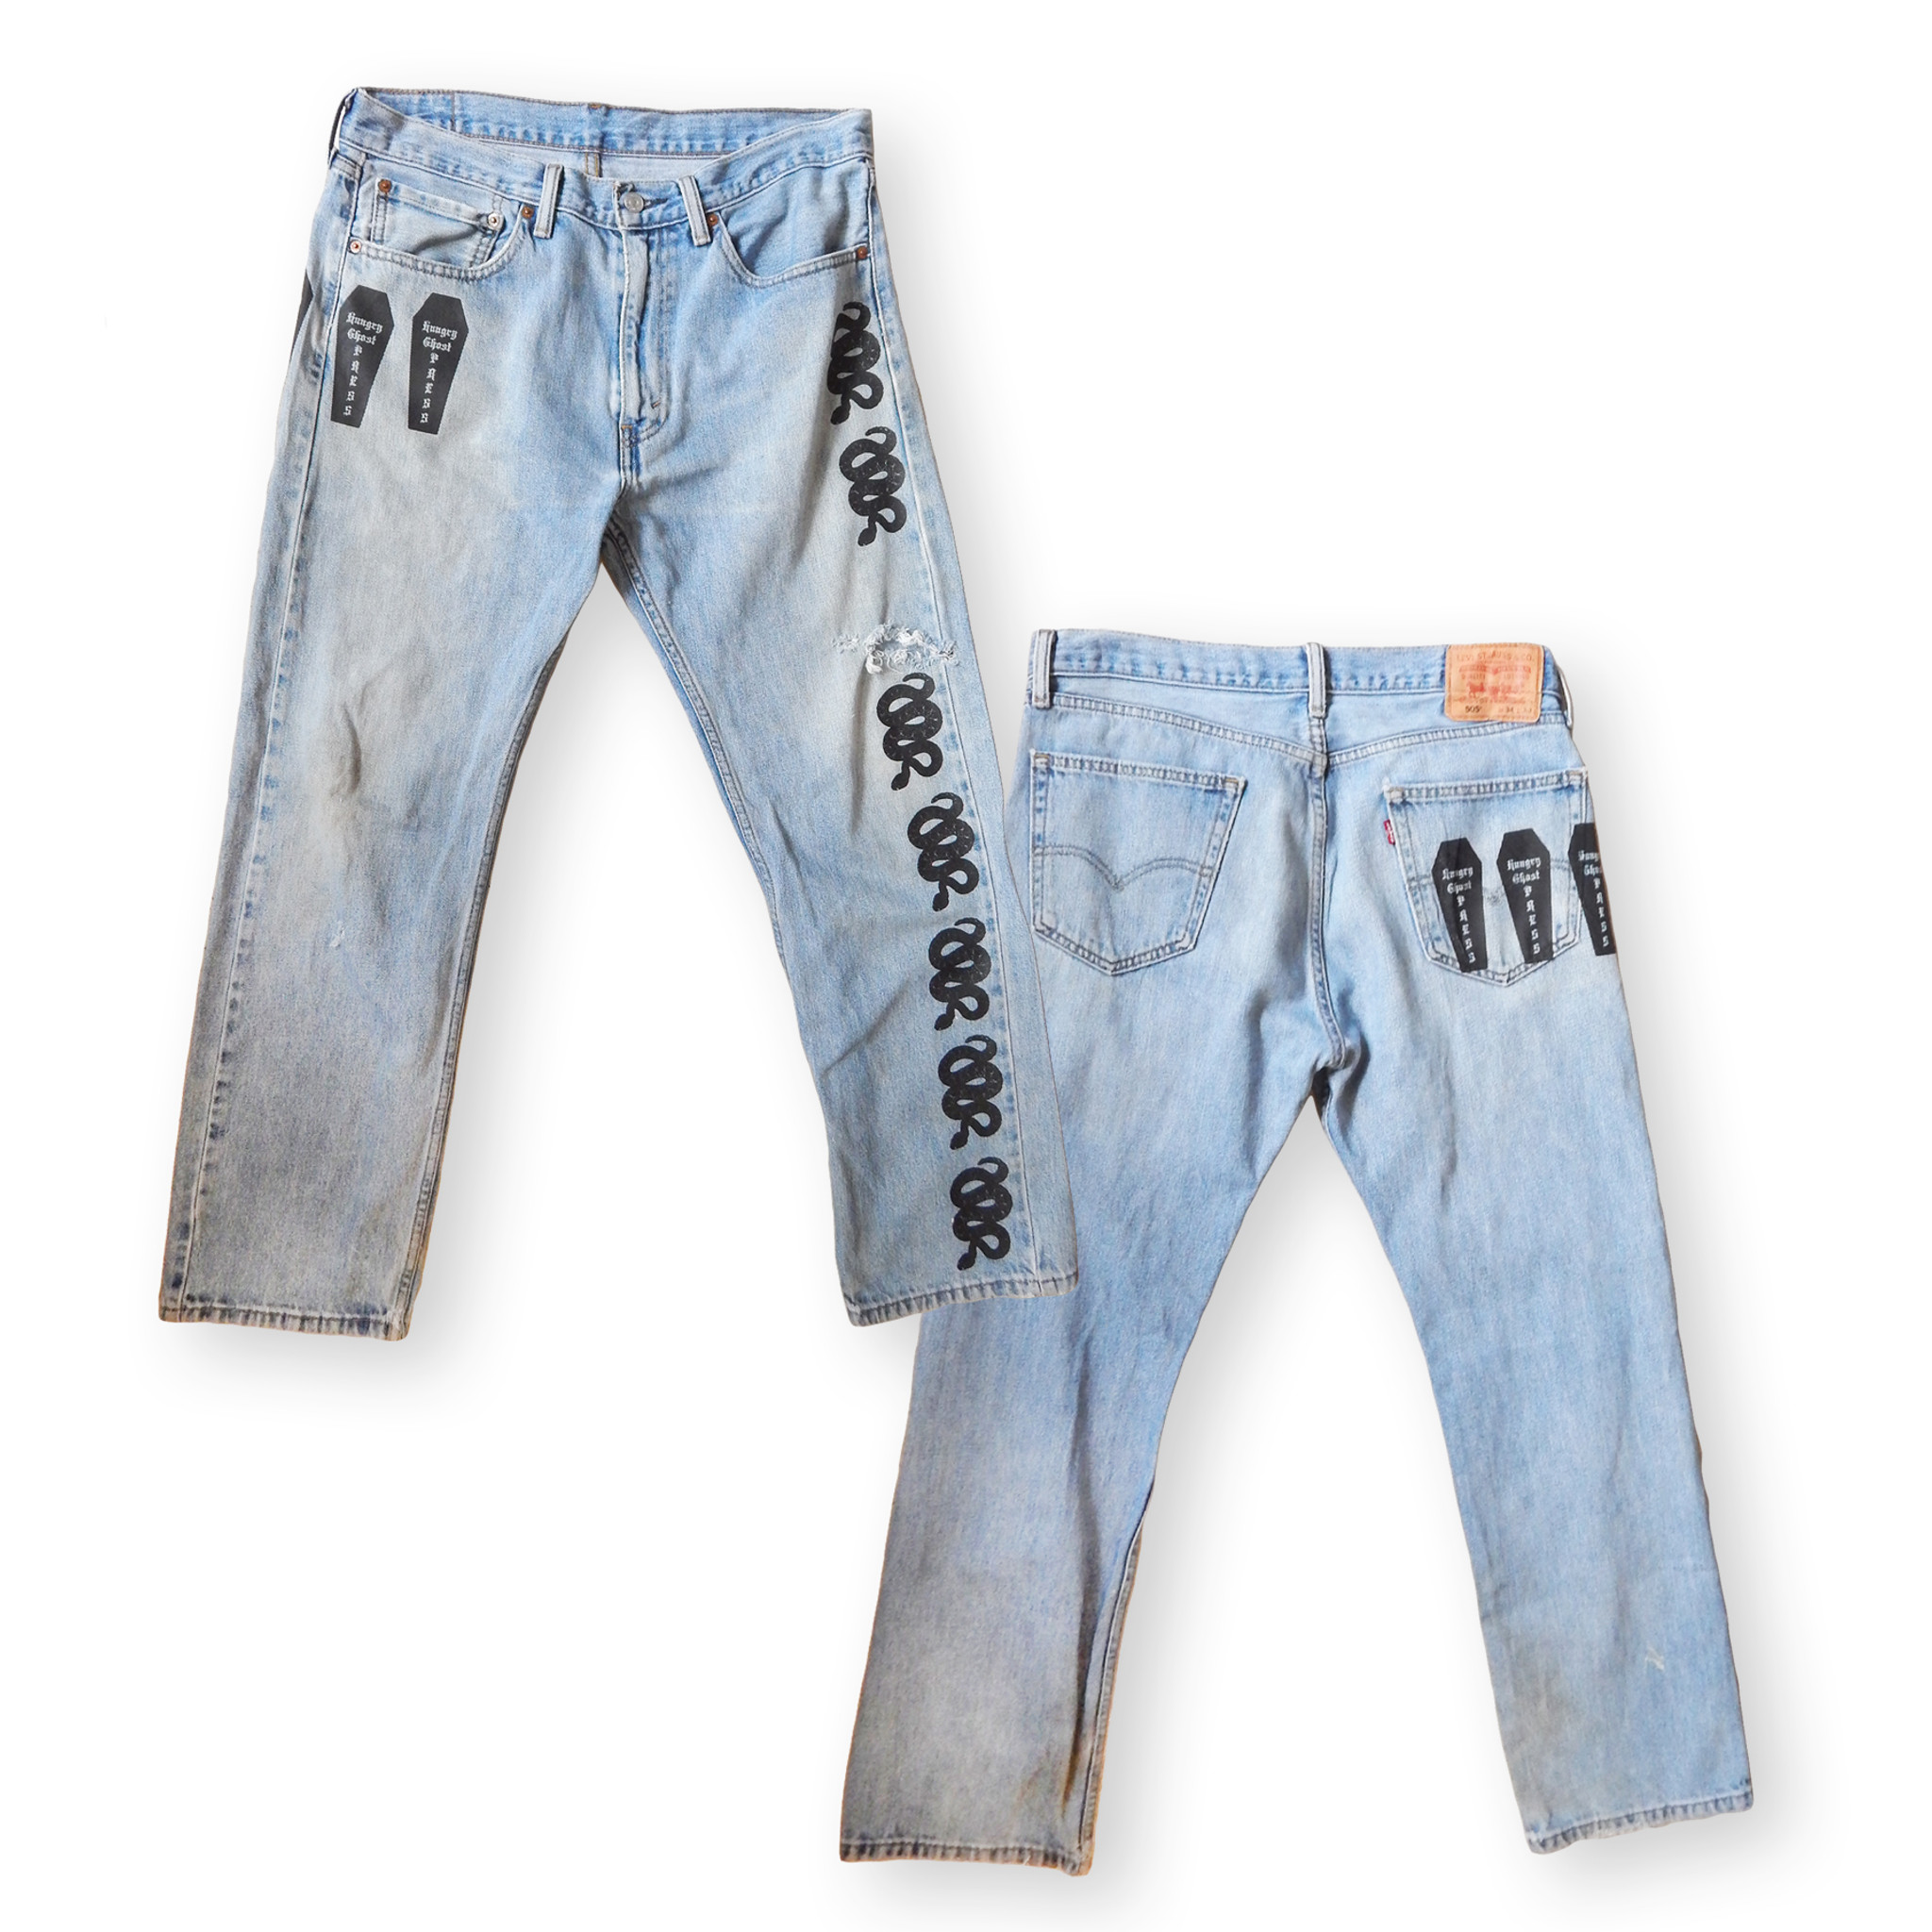 Rattlesnakes Jeans One Off